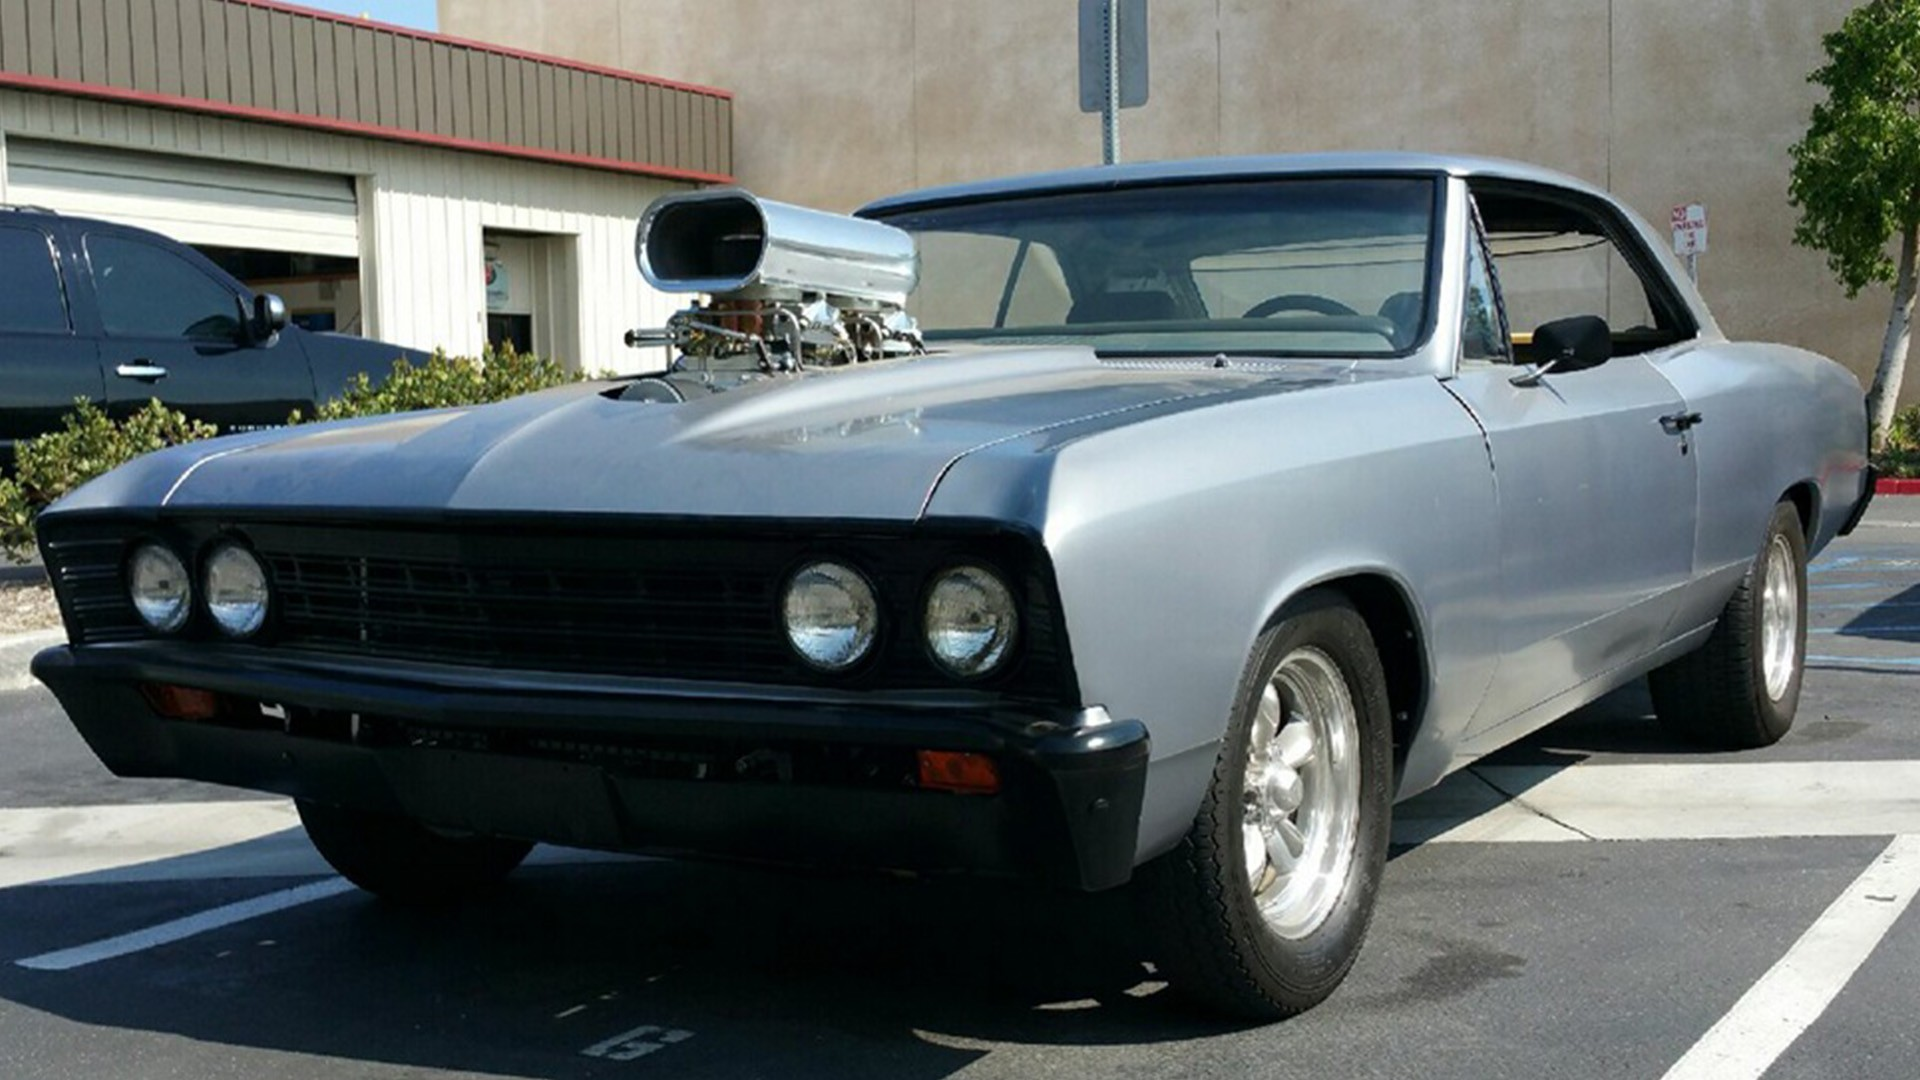 New Chevy Chevelle >> Nick Cannon Gets Upgrades for His 1967 Chevrolet Chevelle - autoevolution